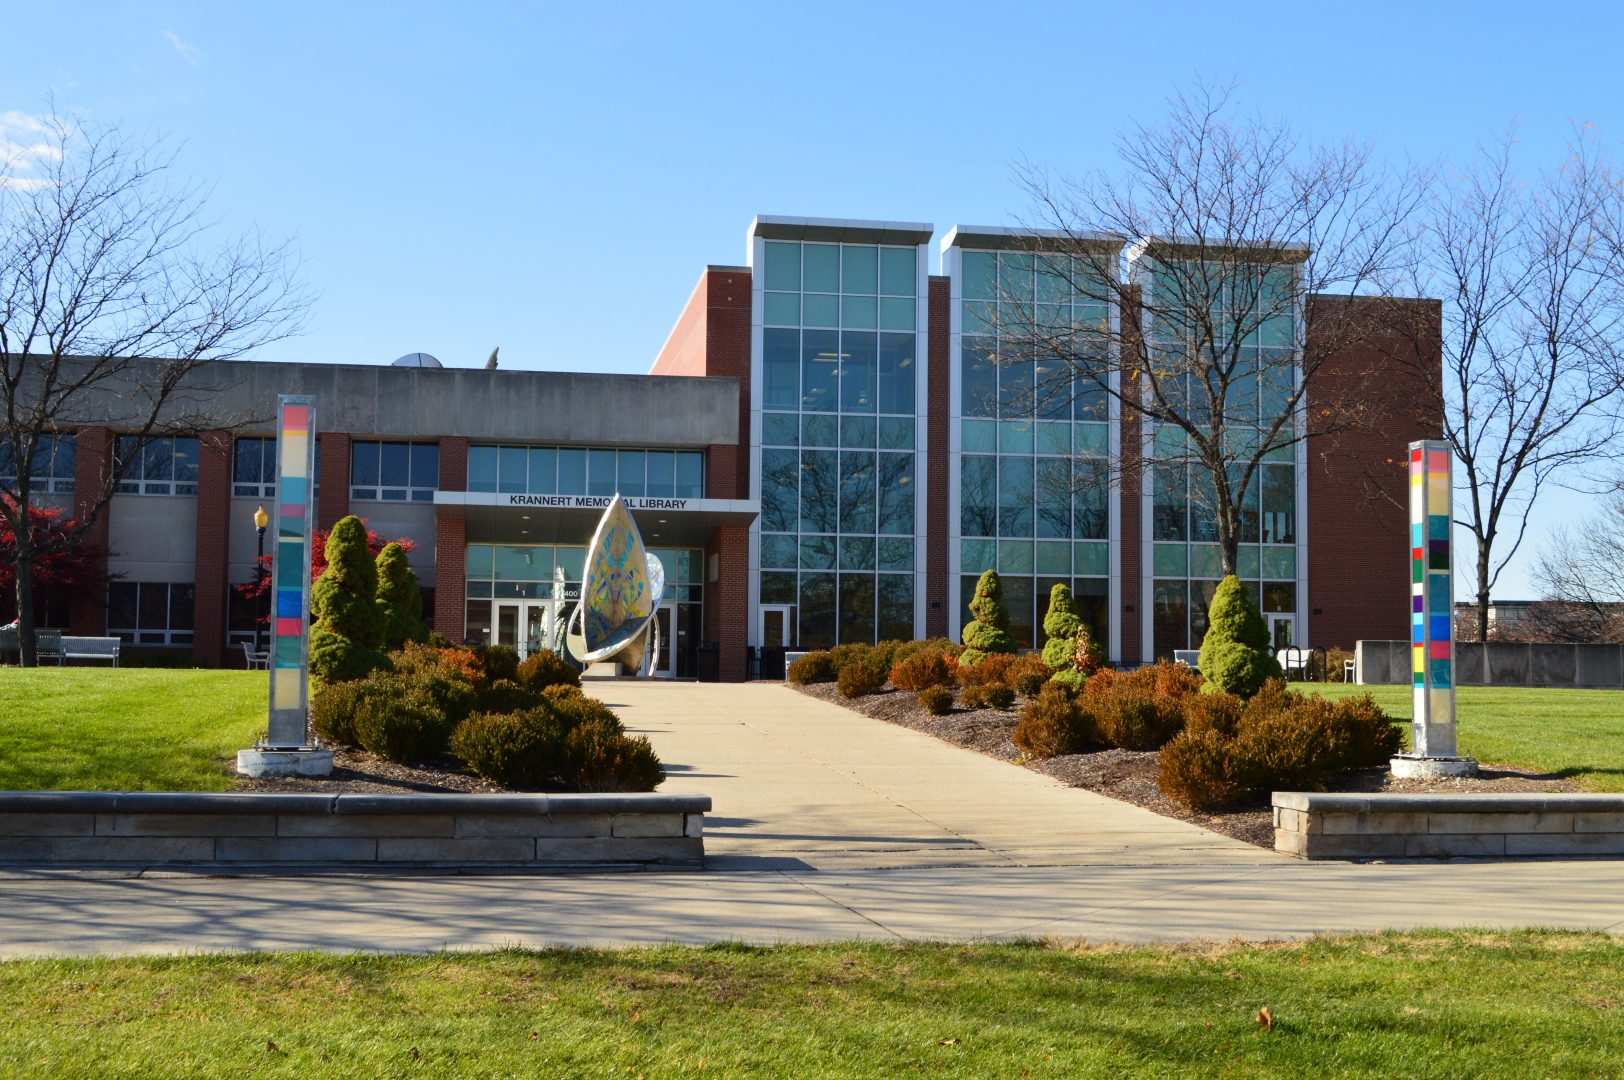 The University of Indianapolis' Krannert Memorial Library.